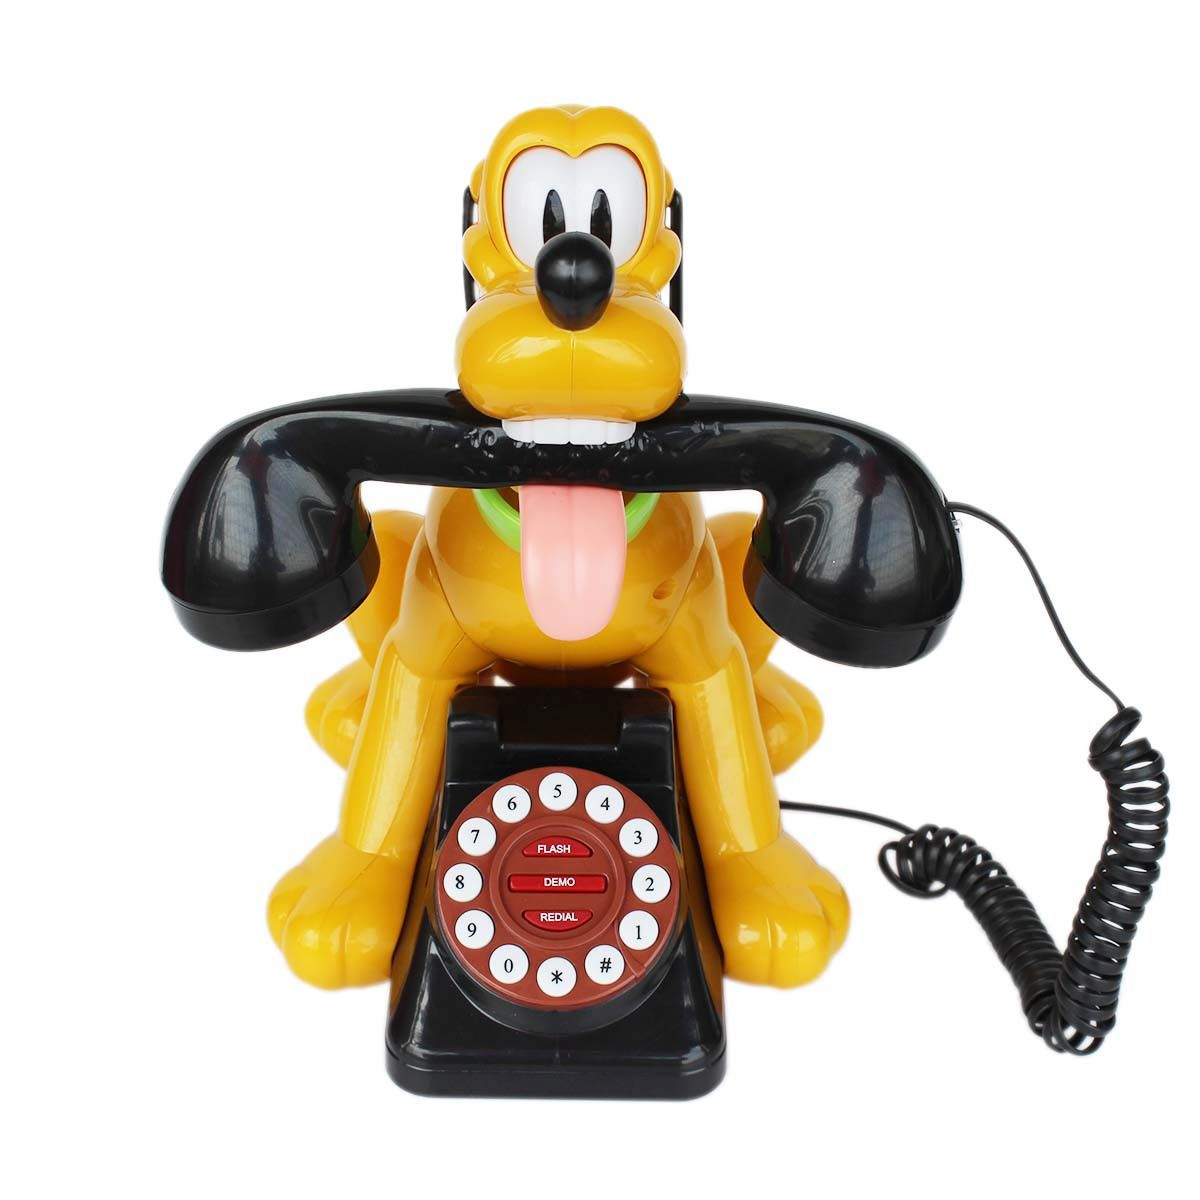 small resolution of animal dog shaped wired telephone landline phone 1m212 yellow landlinephone cartoontelephone homedecor fancyphones telephone